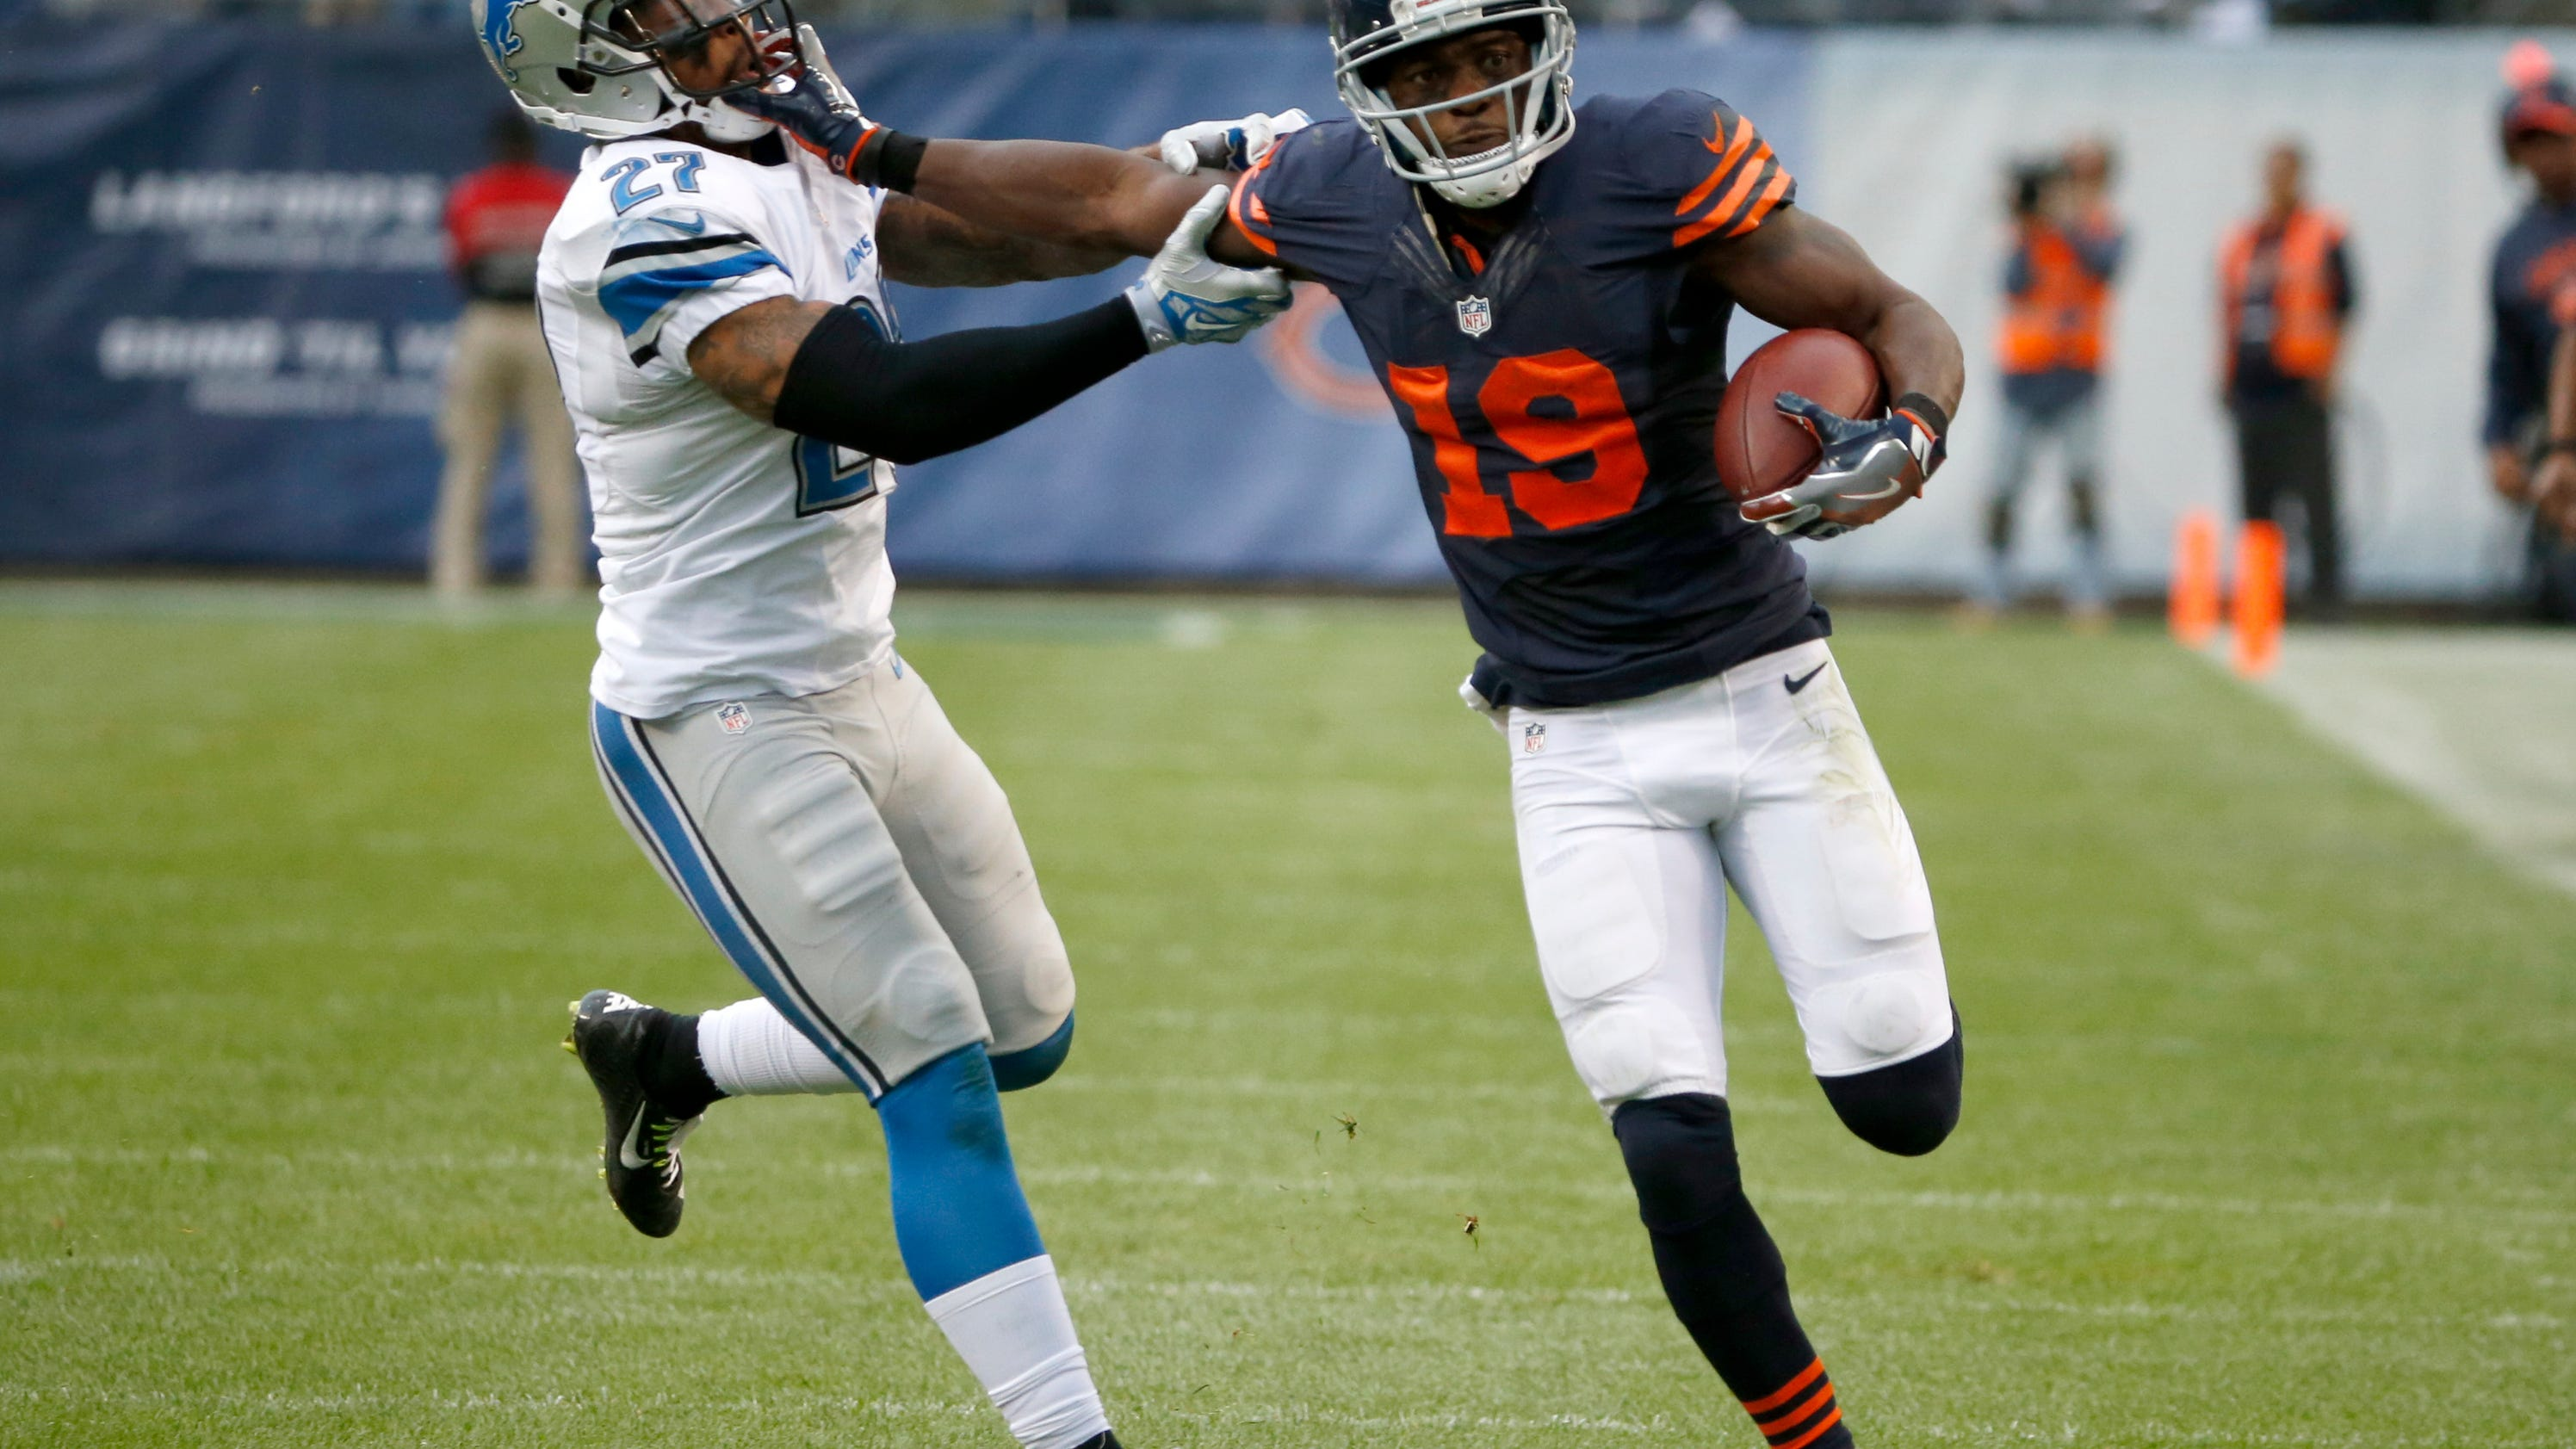 FANTASY PLAYS: Waivers on first week byes play big role